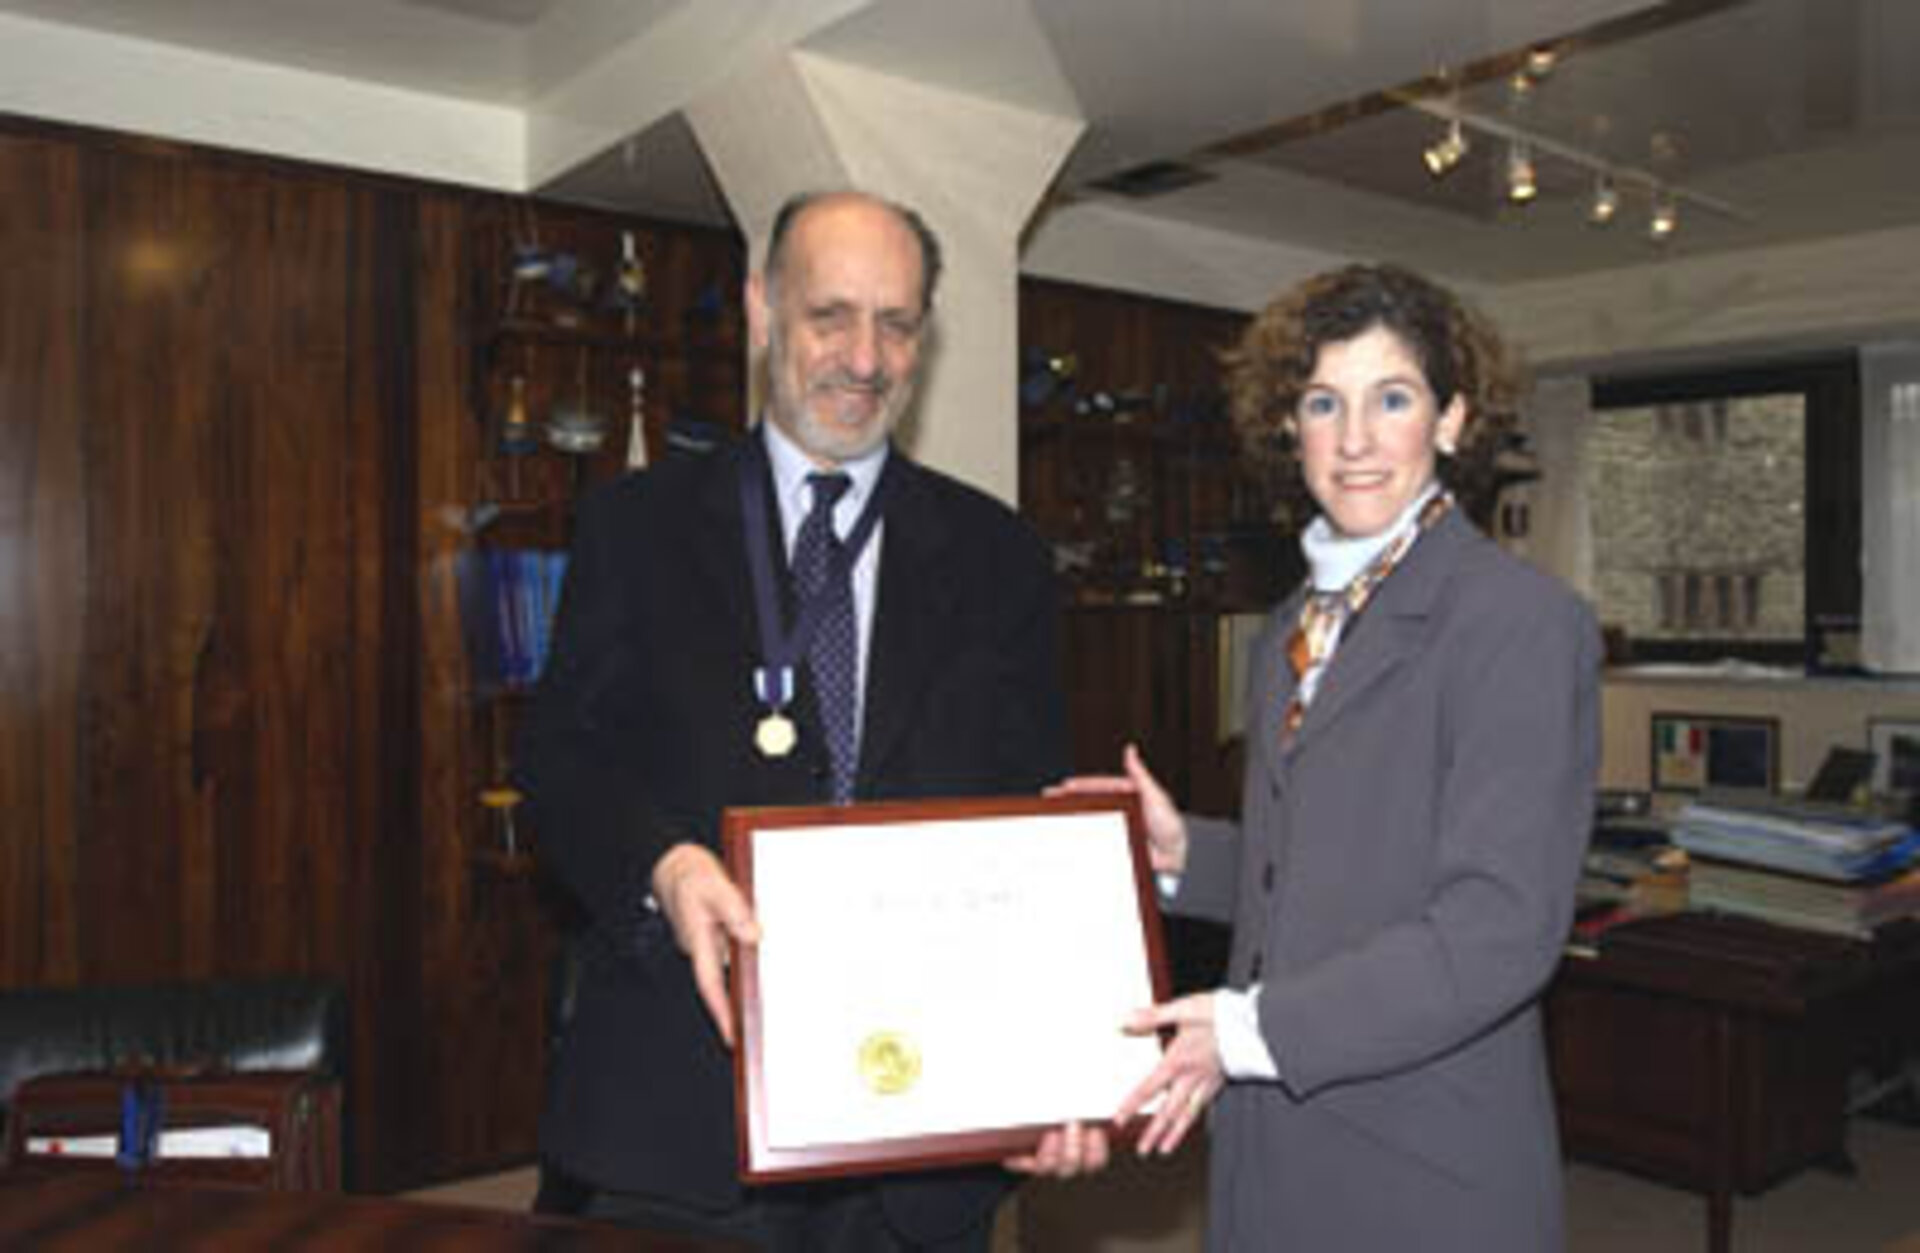 Antonio Rodotà was awarded the NASA Distinguished Public Service Medal